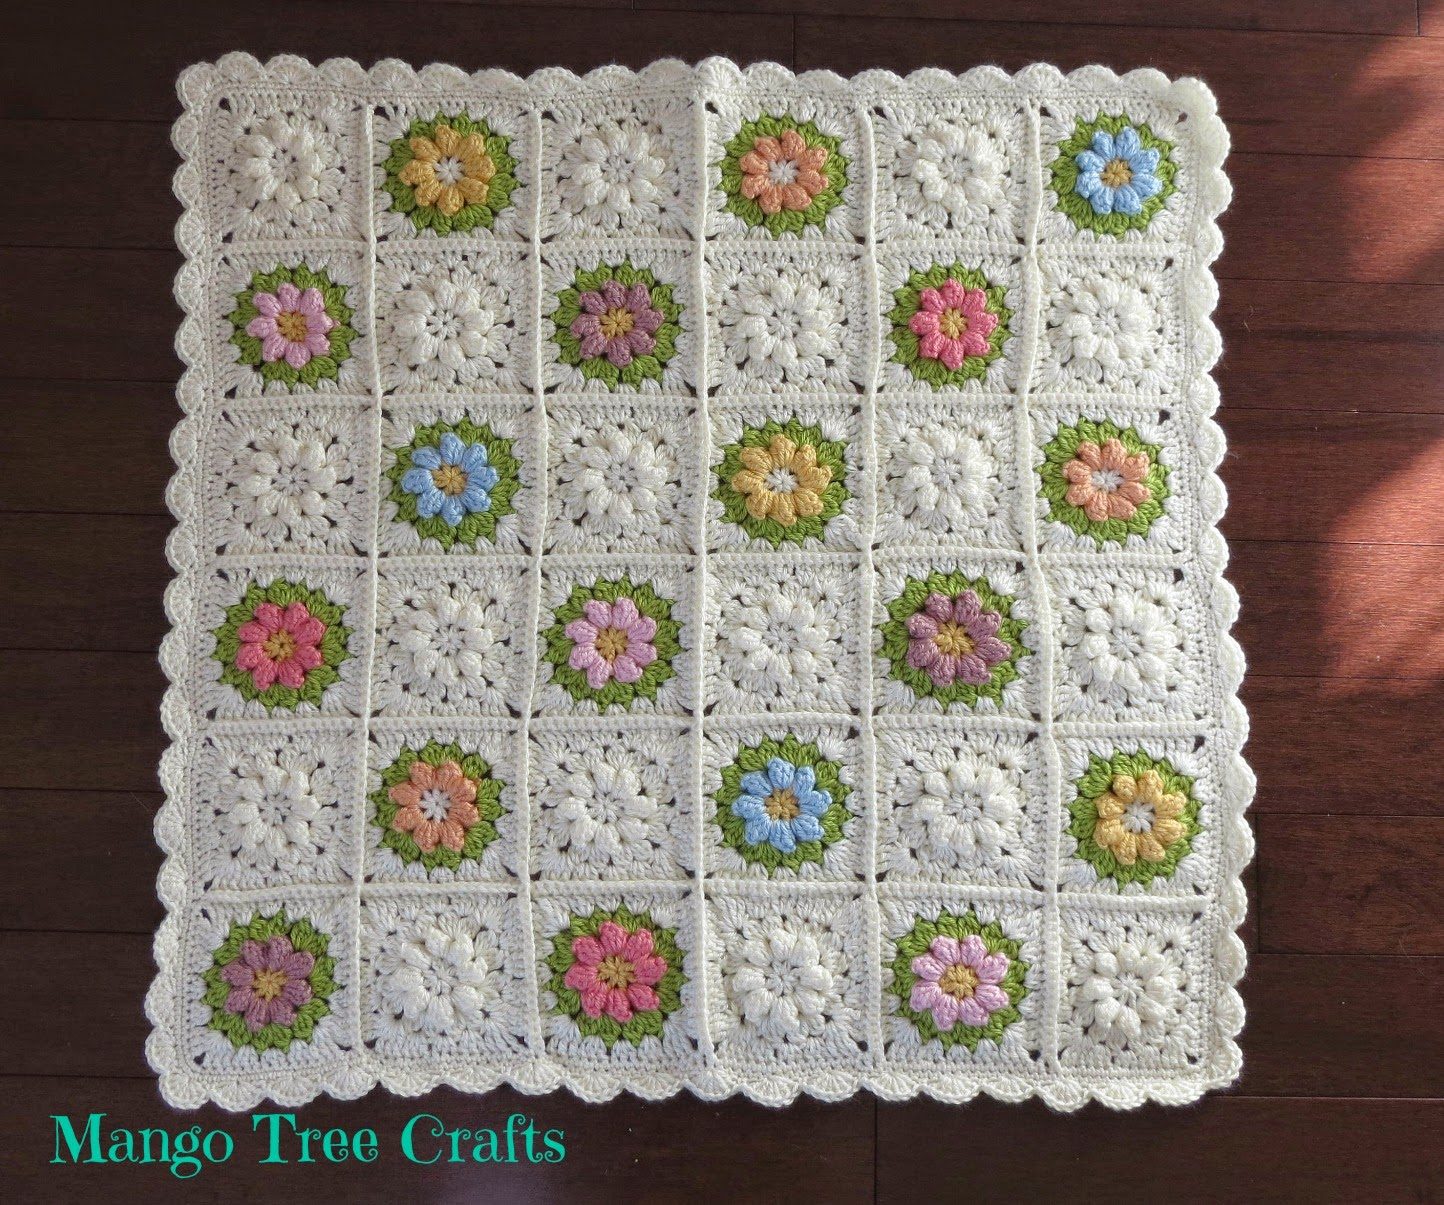 Crochet Patterns For Baby Blankets Squares : Mango Tree Crafts: Crochet Baby Blanket